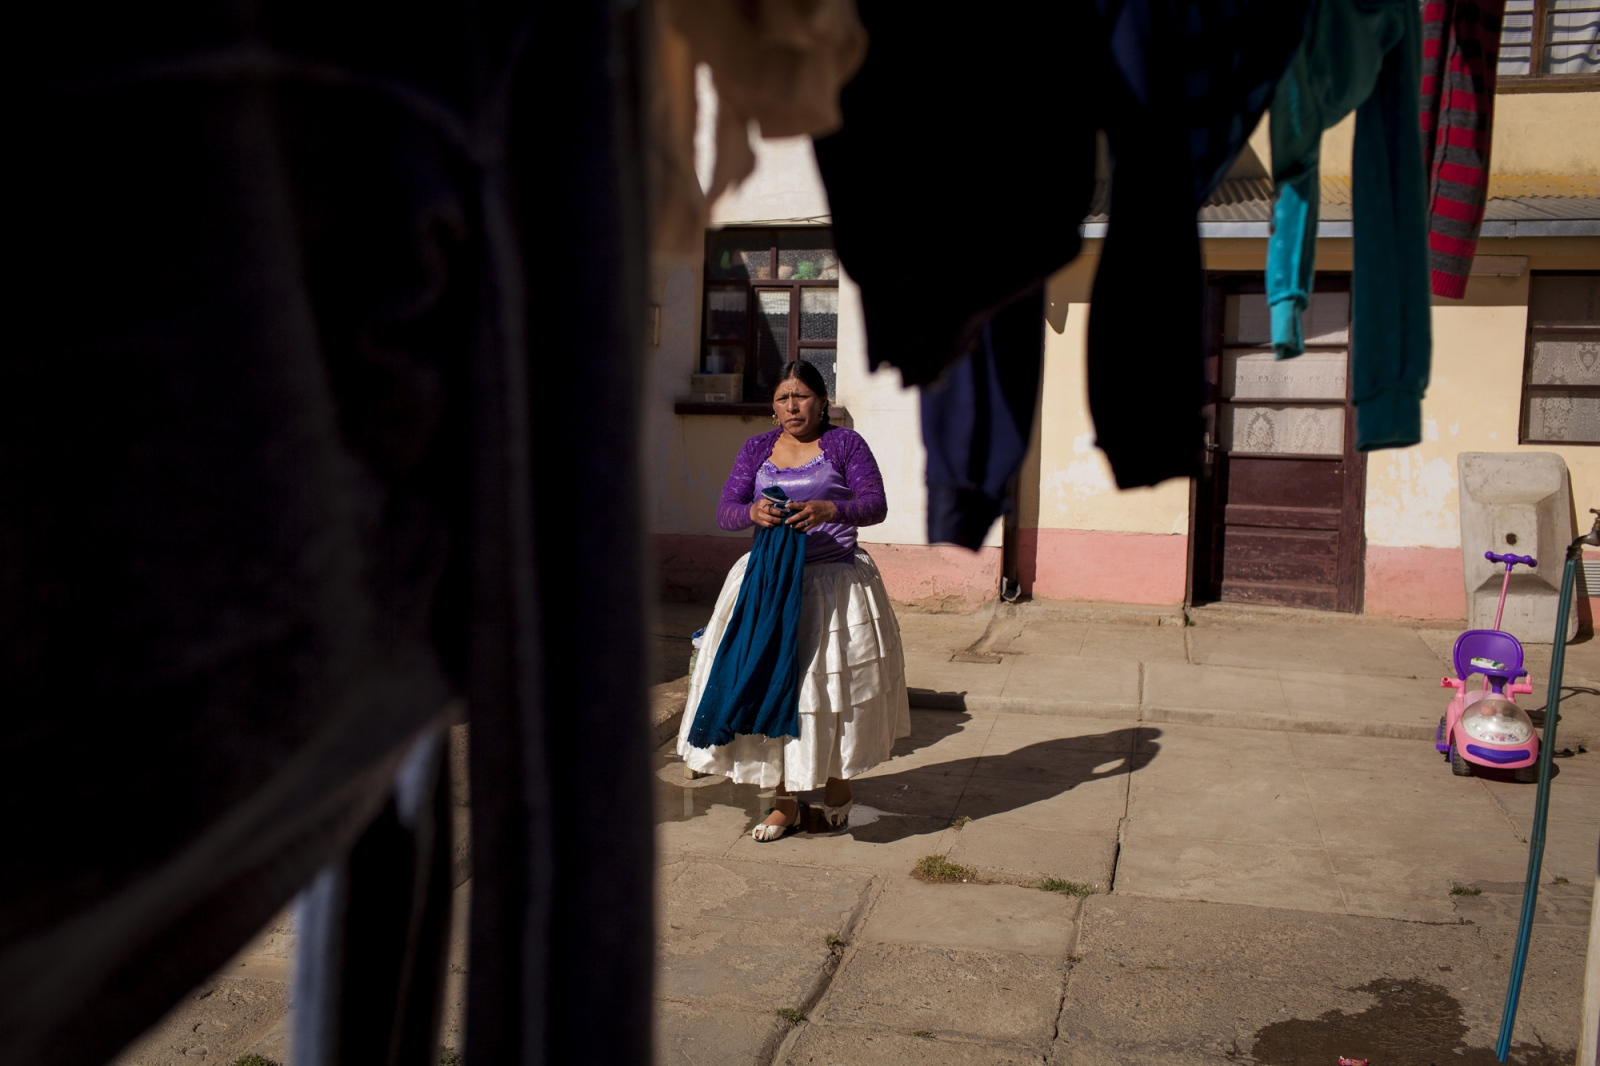 Reyna Torres, takes clothes to dry on a rope in her parent's home. When she is not fighting or involved in the organization of the fights she helps her mother in house duties. Reyna is one of the wrestling fighters part of the Cholitas Luchadoras group that fight every Sunday on the city of El Alto, Bolivia.